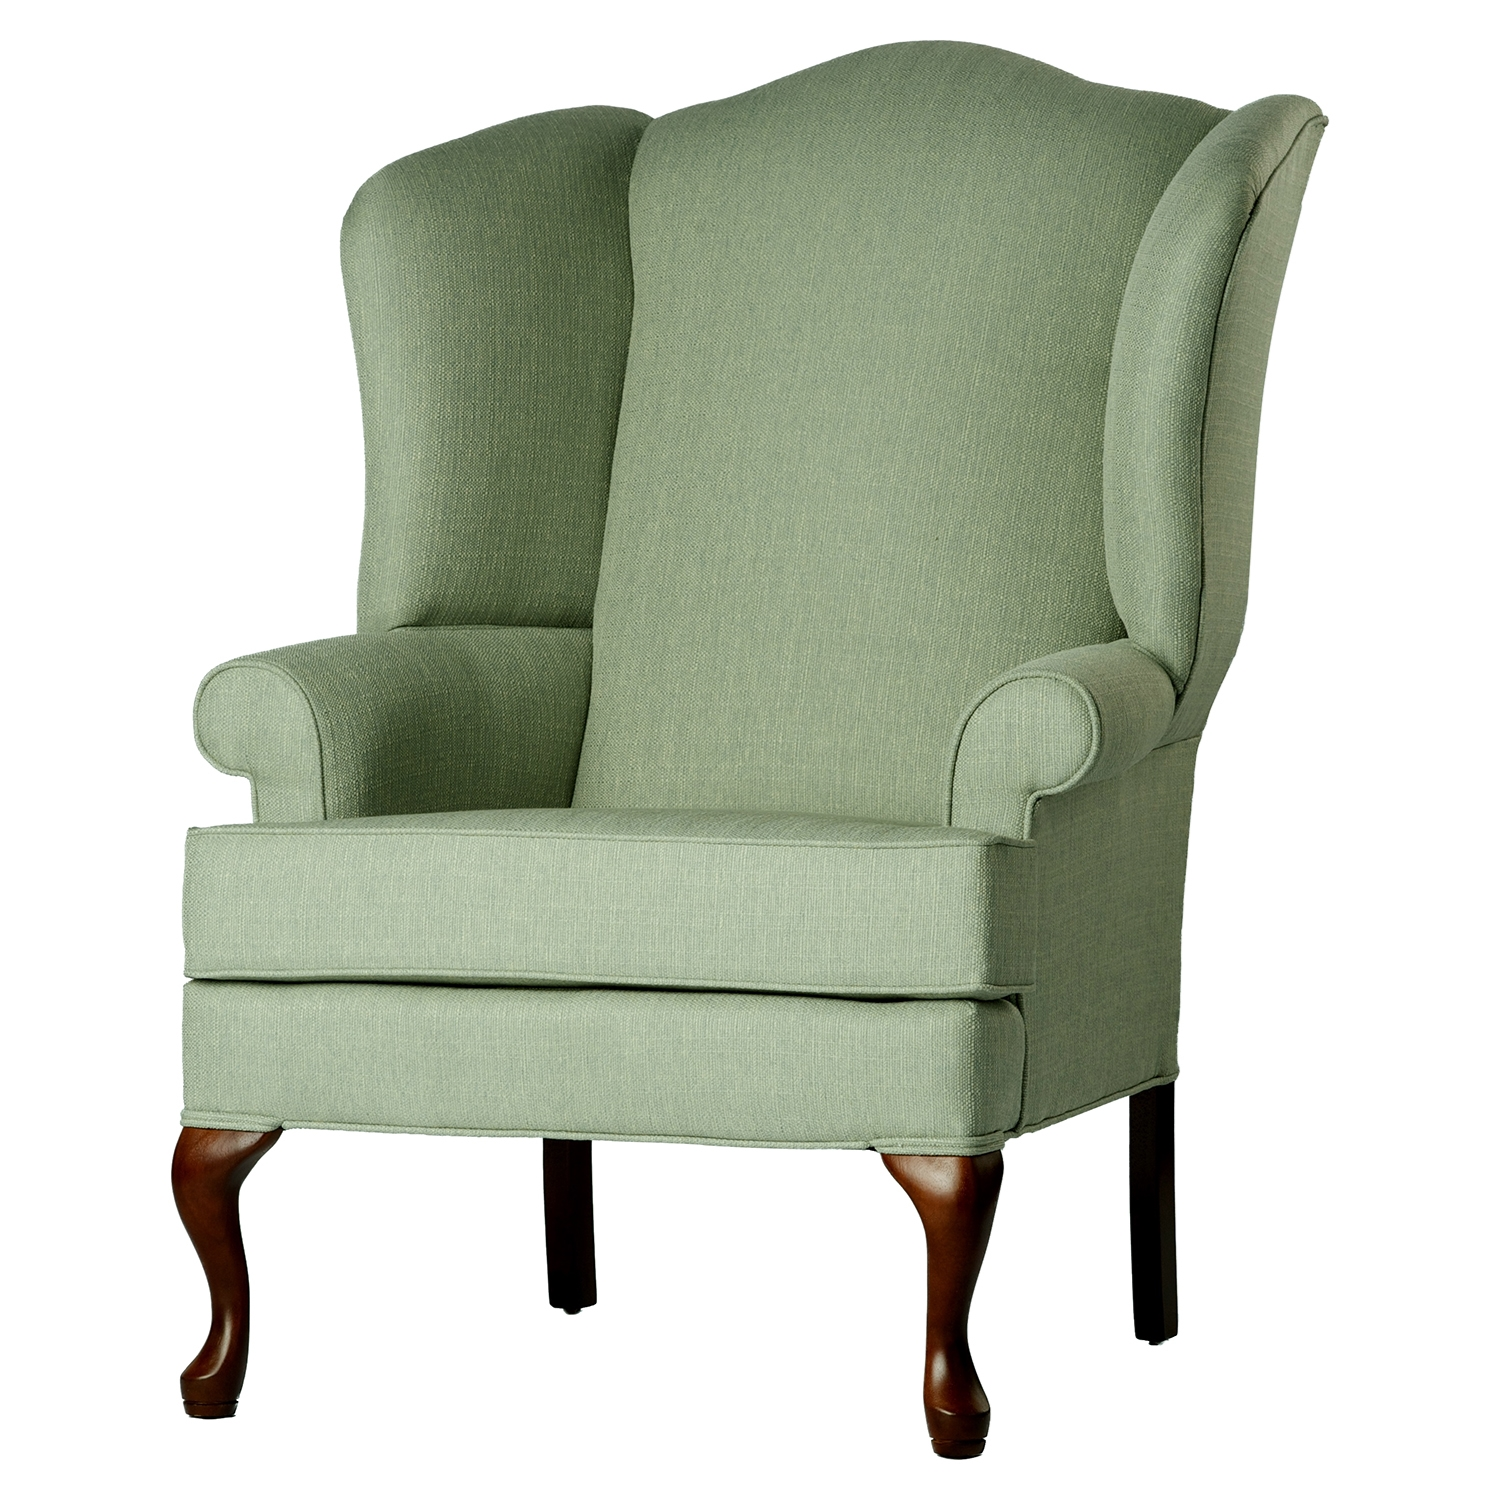 Crawford Wing Back Chair - Cadet, Cherry